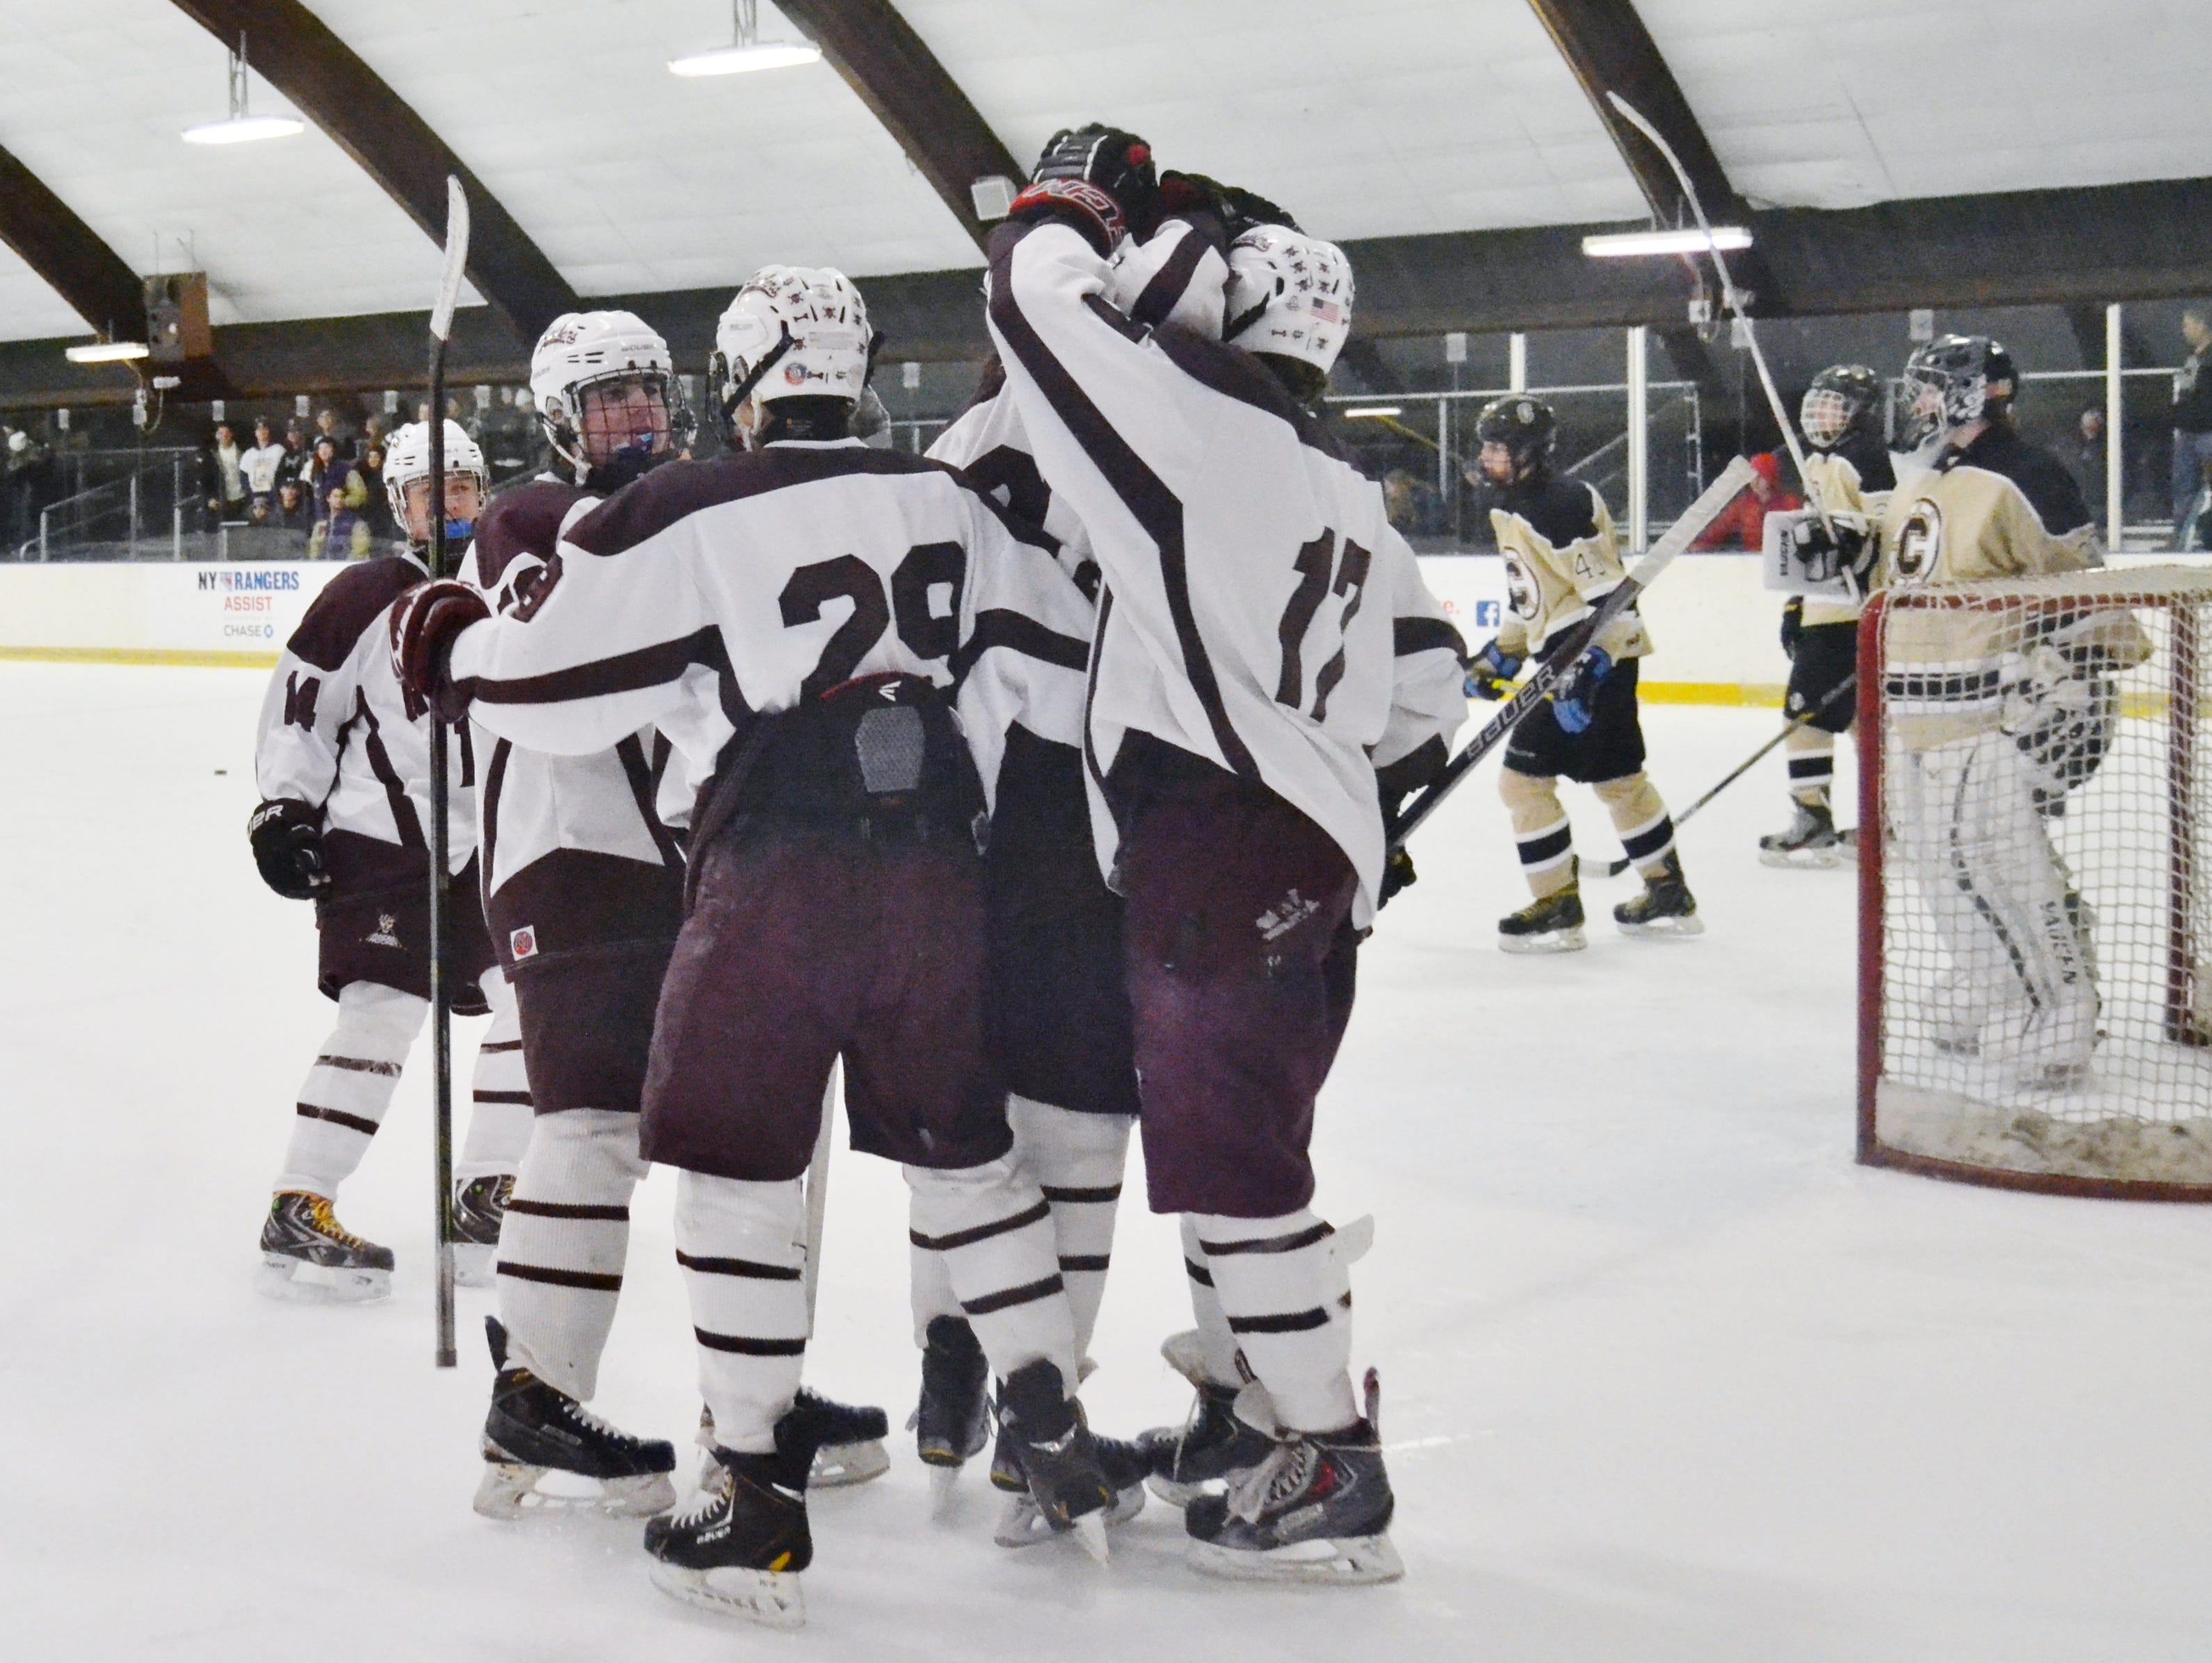 Despite all of the program's success on the ice in the last five seasons, head coach Jim Mancuso was not retained by Scarsdale.